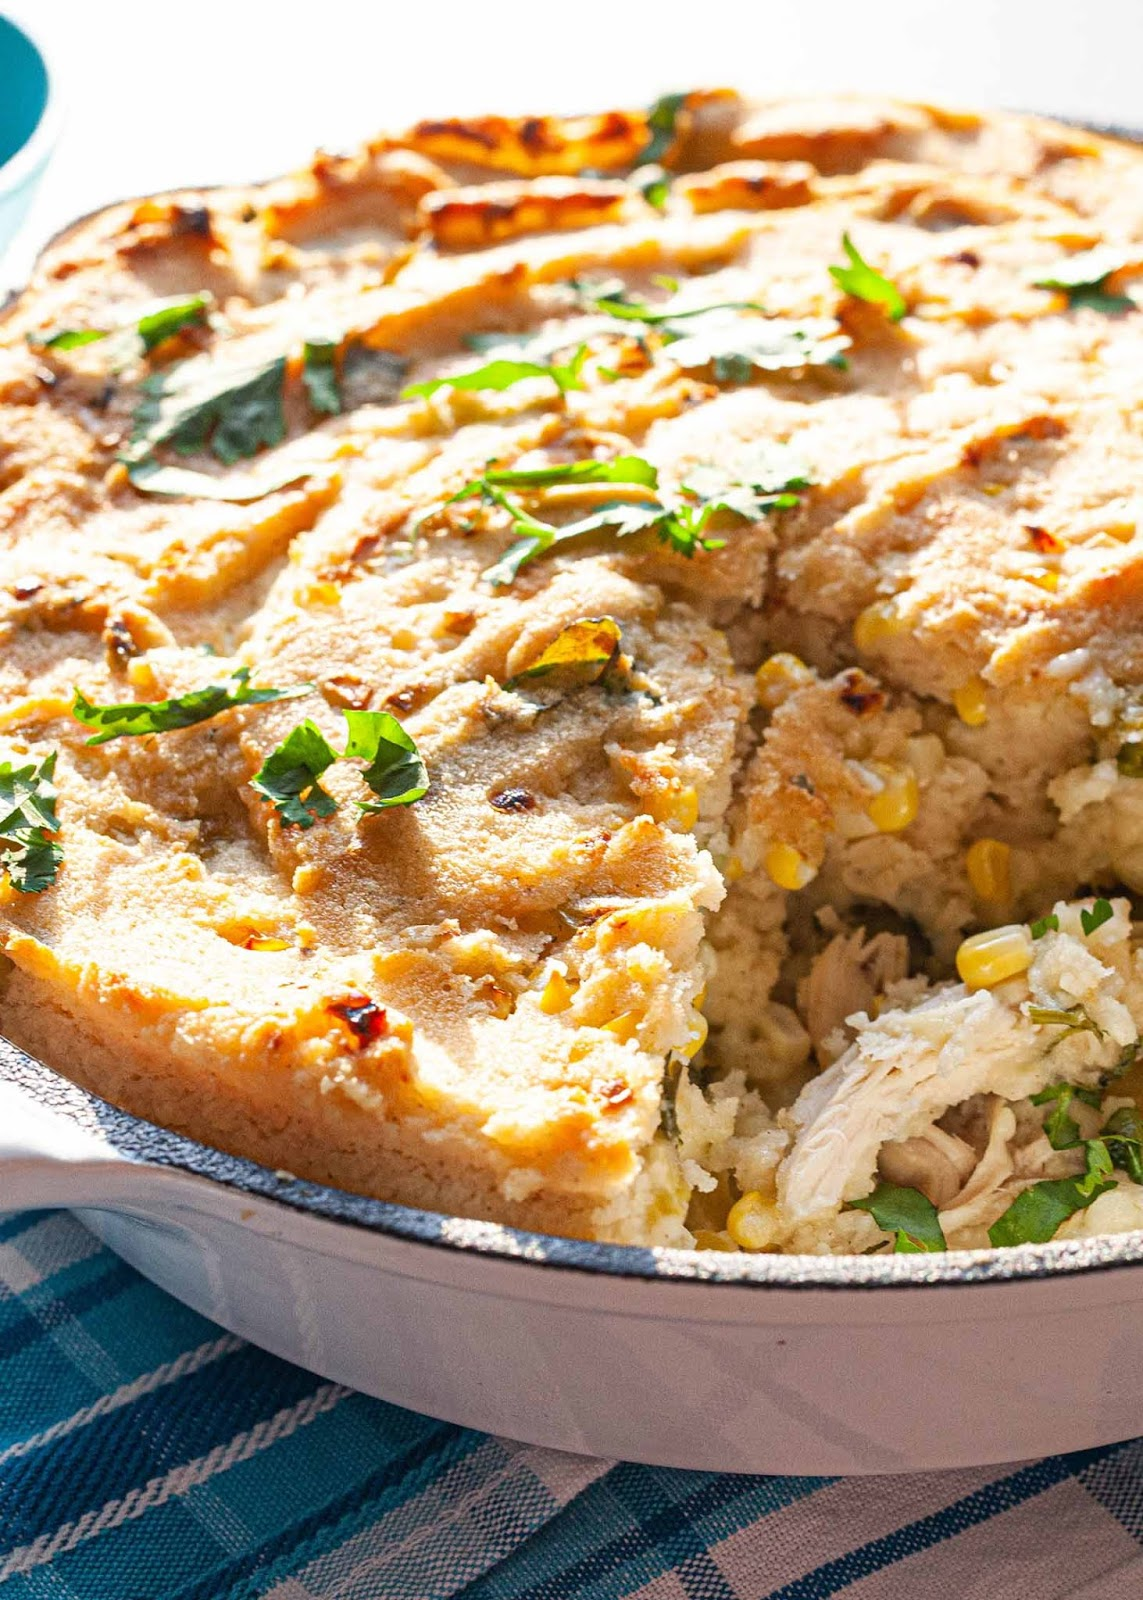 Tamale Pie with Chicken, Green Chiles, and Cheese